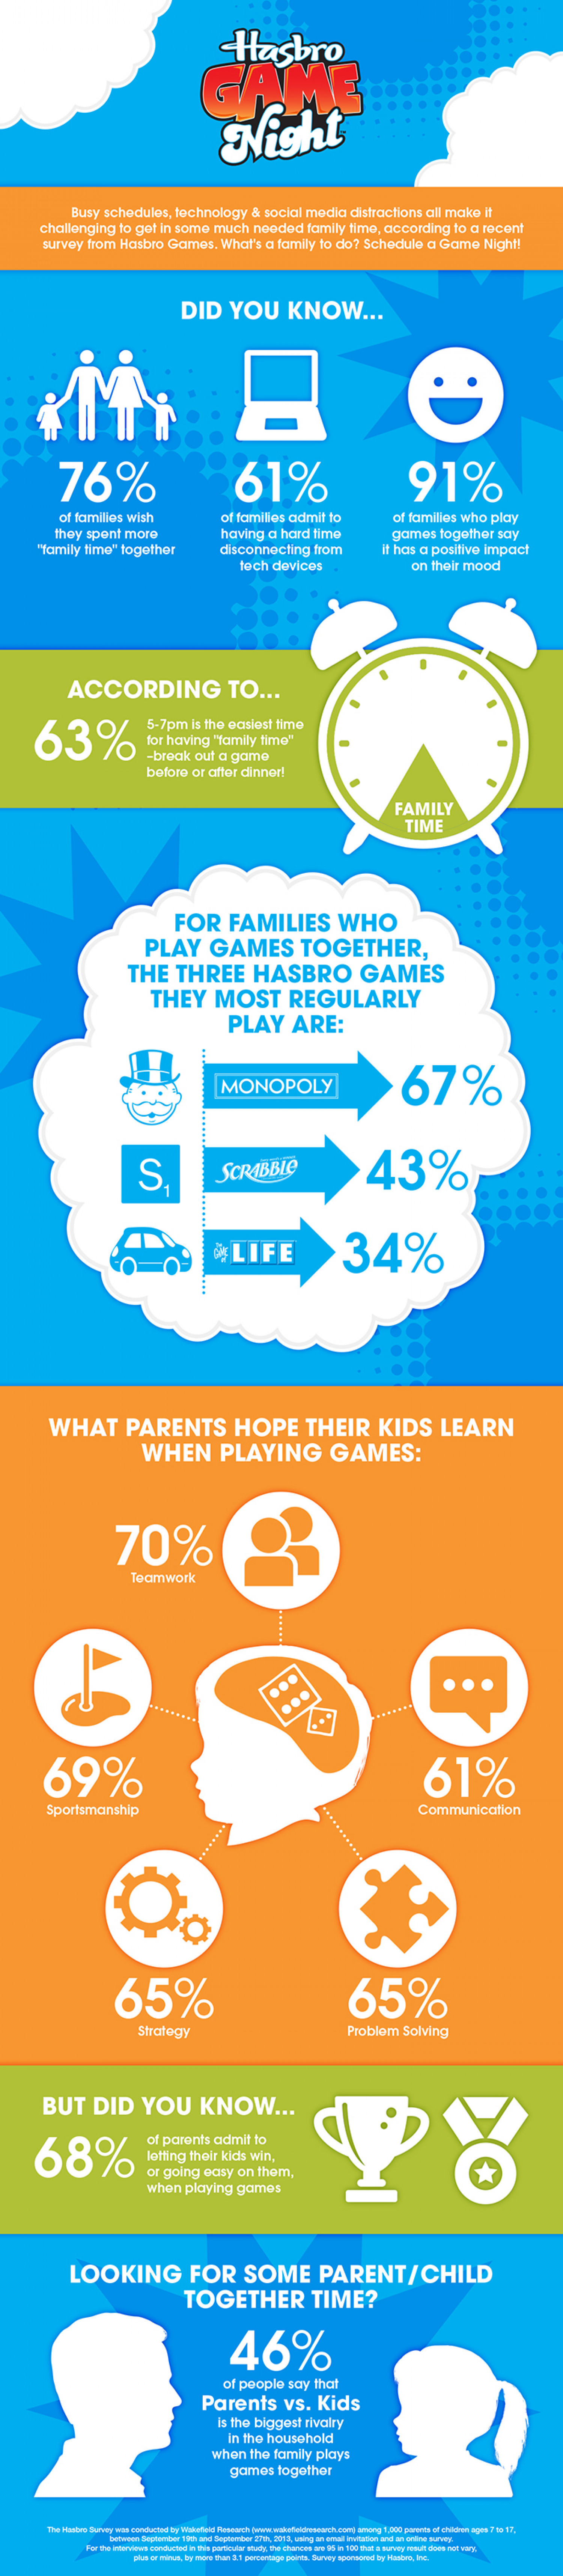 Hasbro Game Night Infographic Infographic